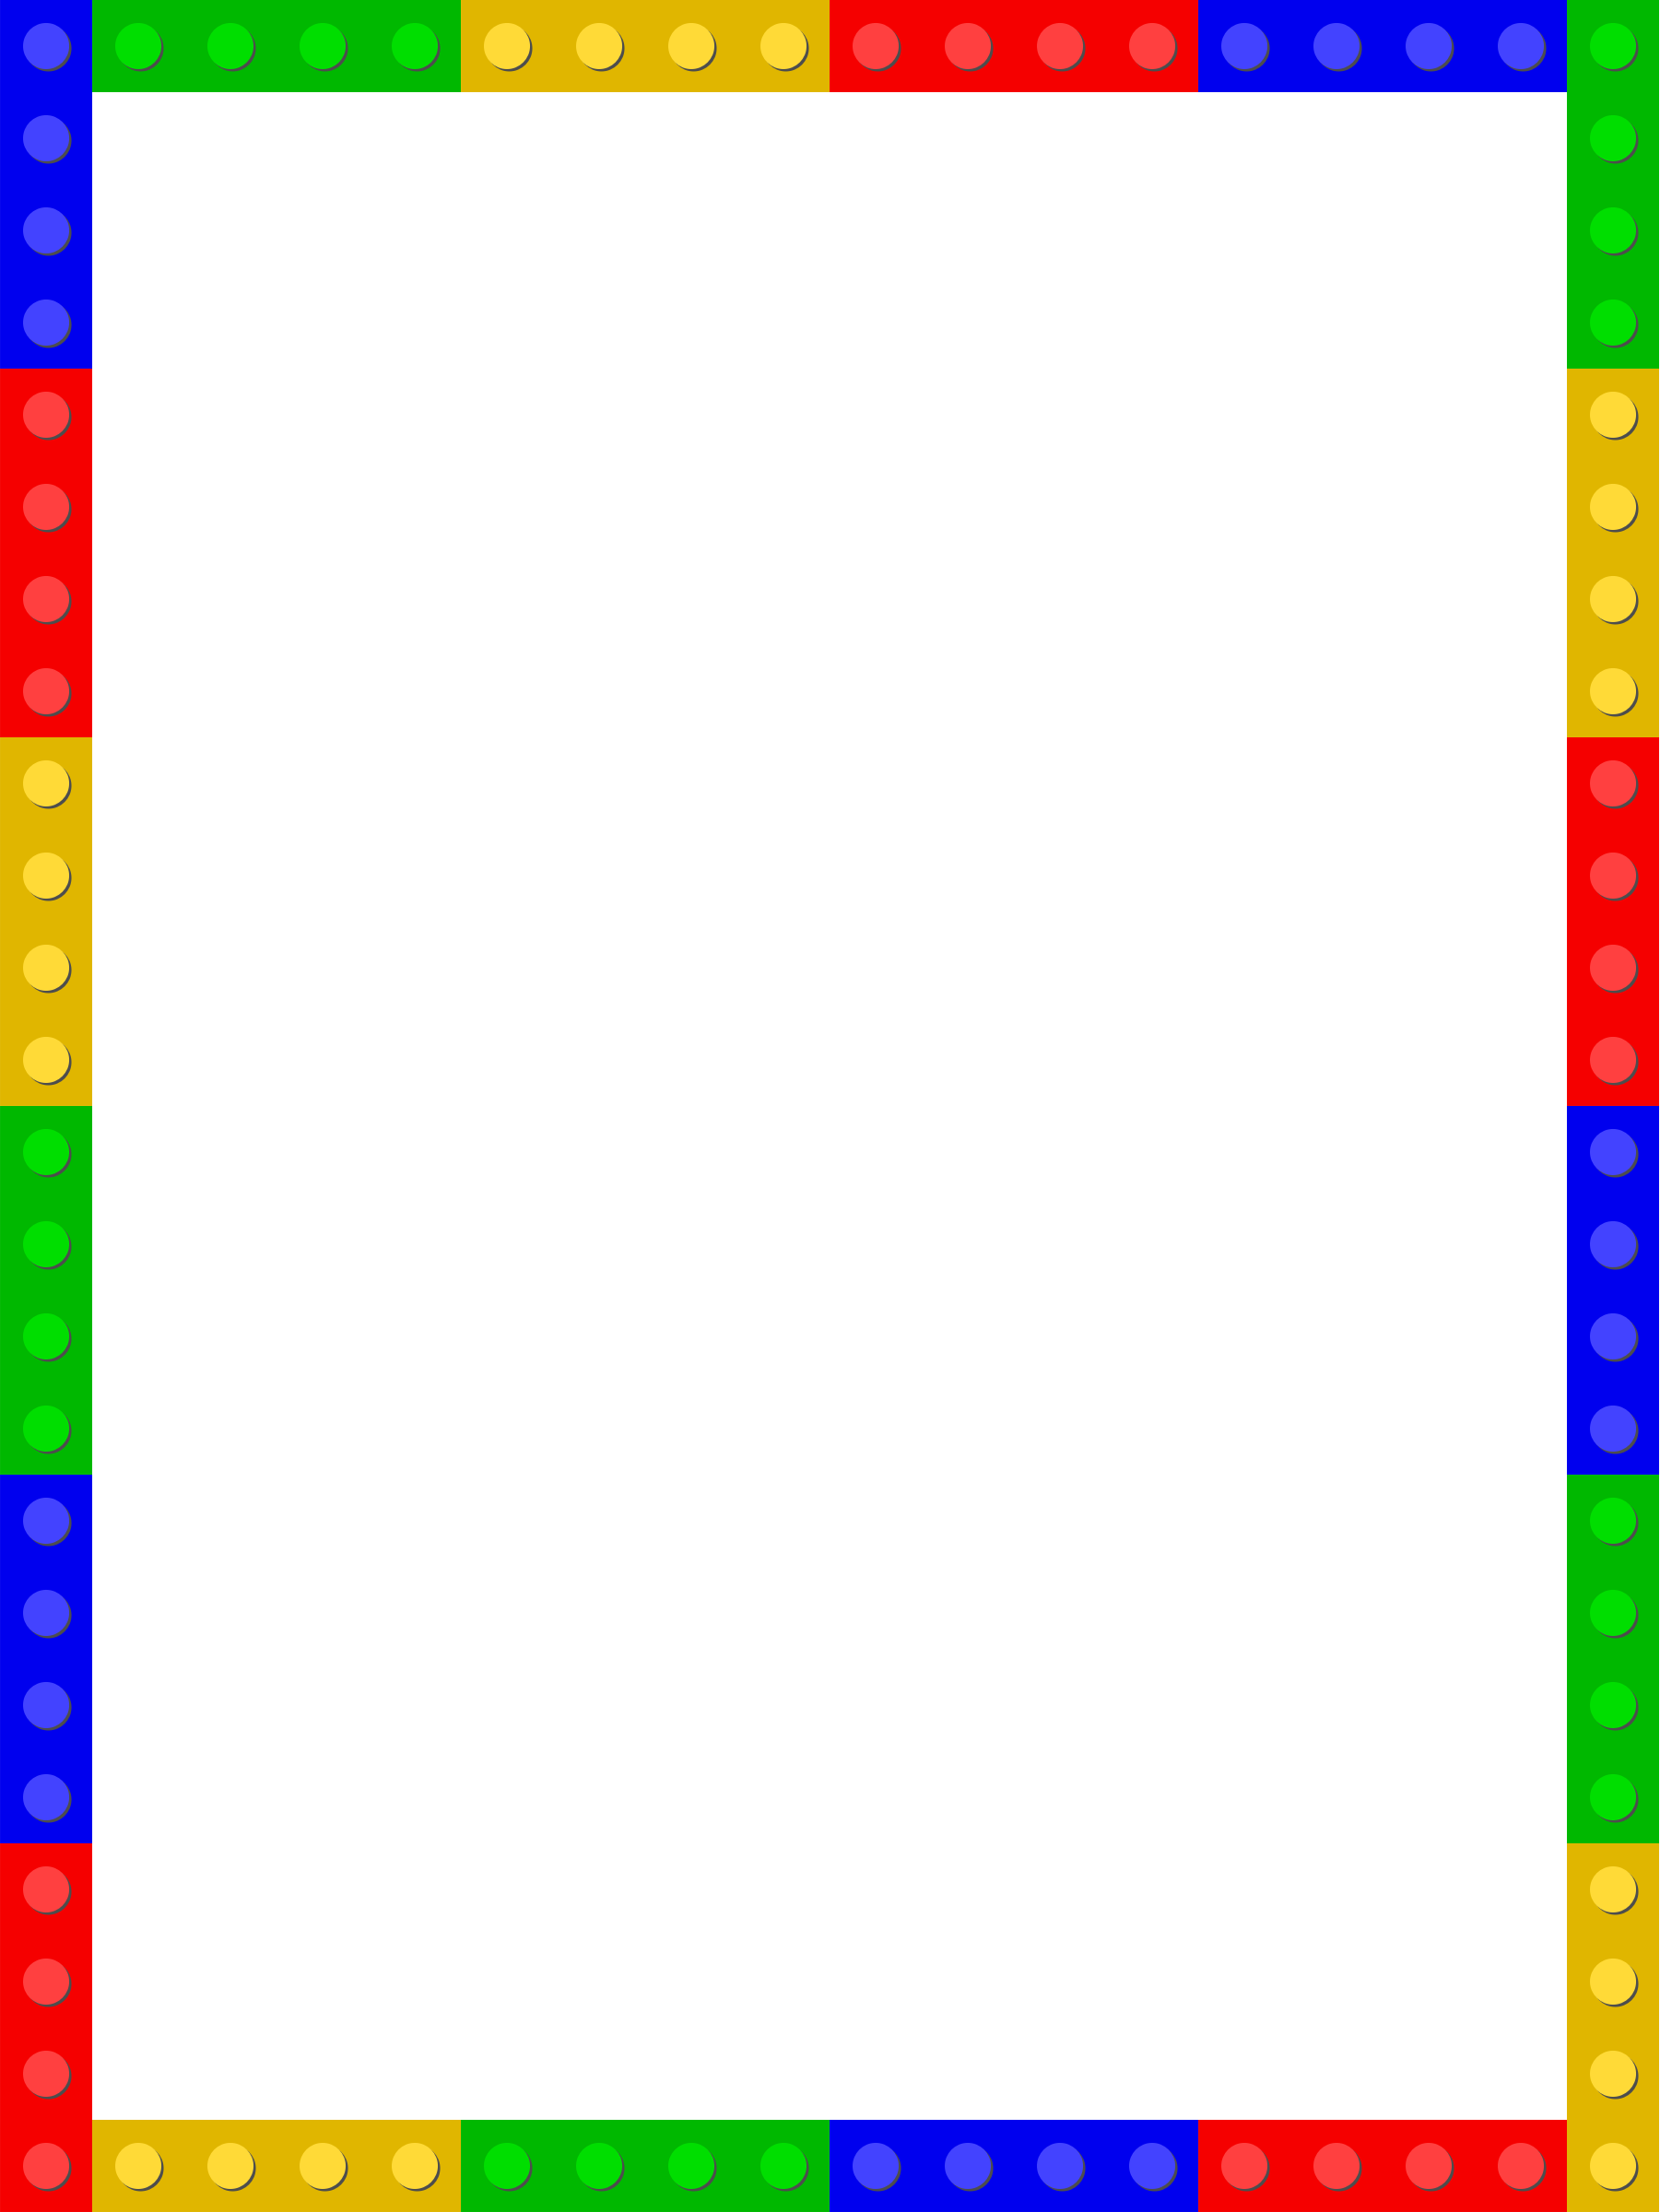 Images of lego clip. Legos clipart frame